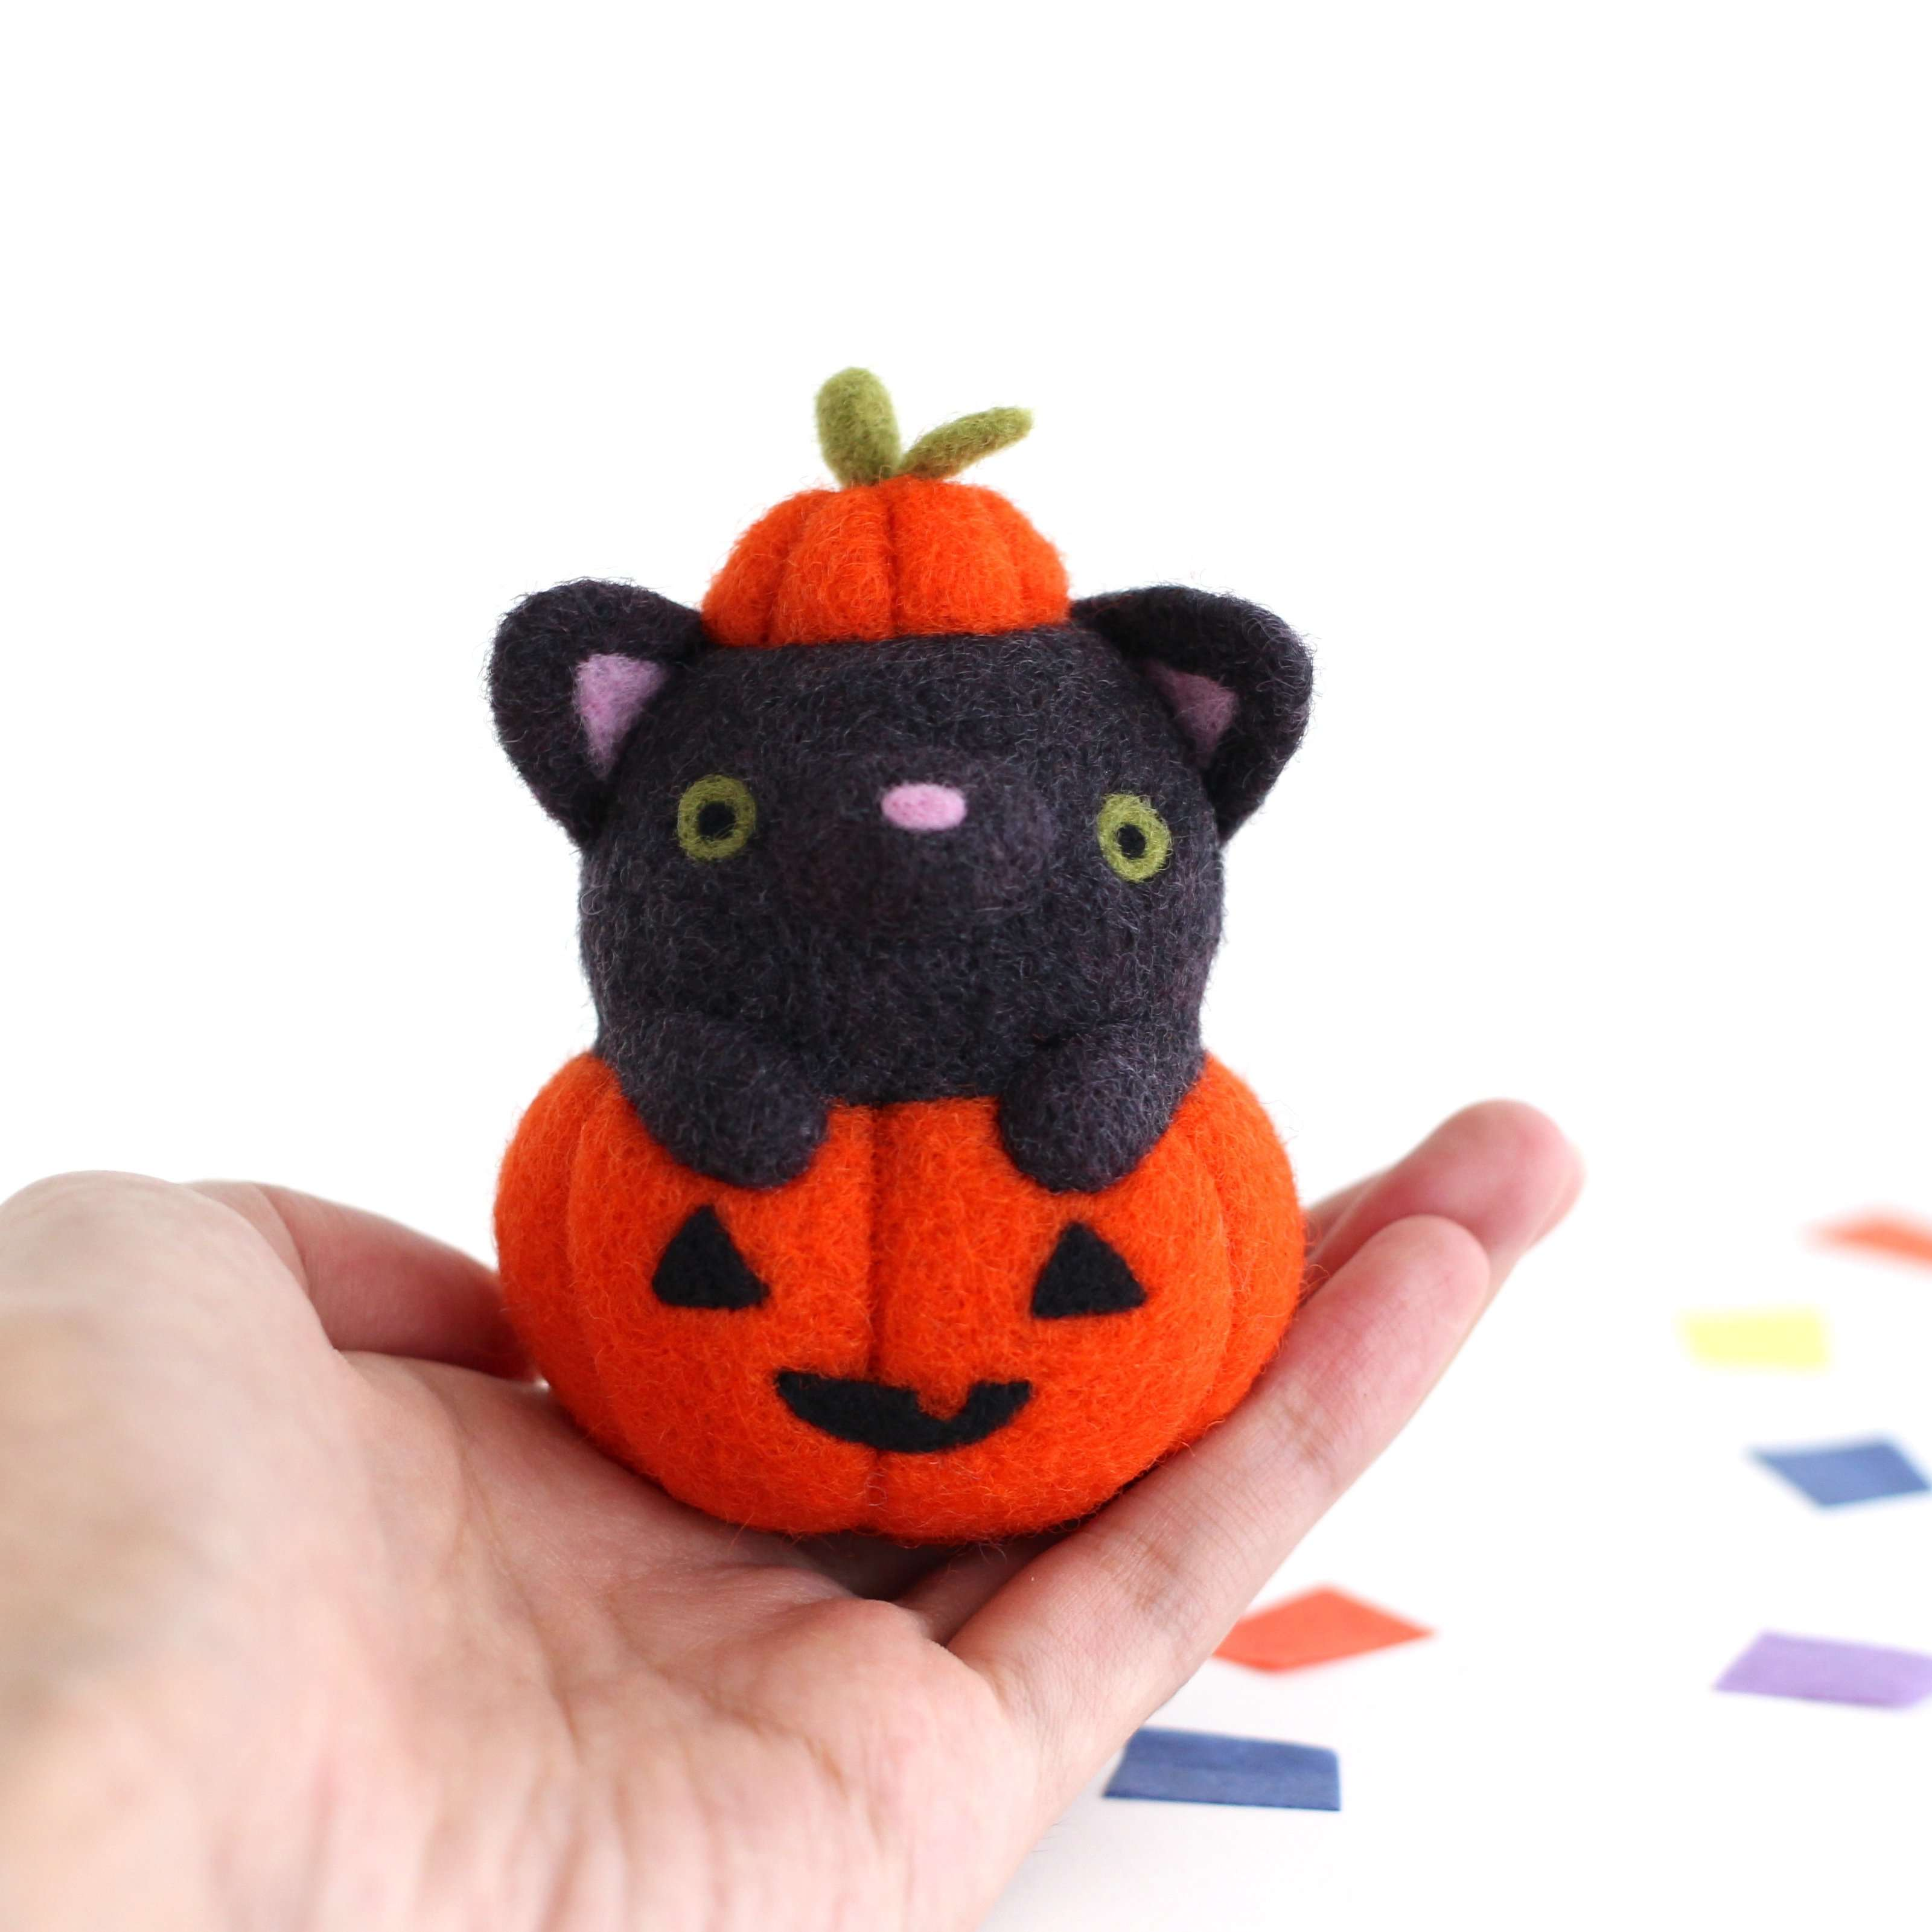 Needle Felted Black Cat in Jack-o'-Lantern (Bright Orange Variant) by Wild Whimsy Woolies